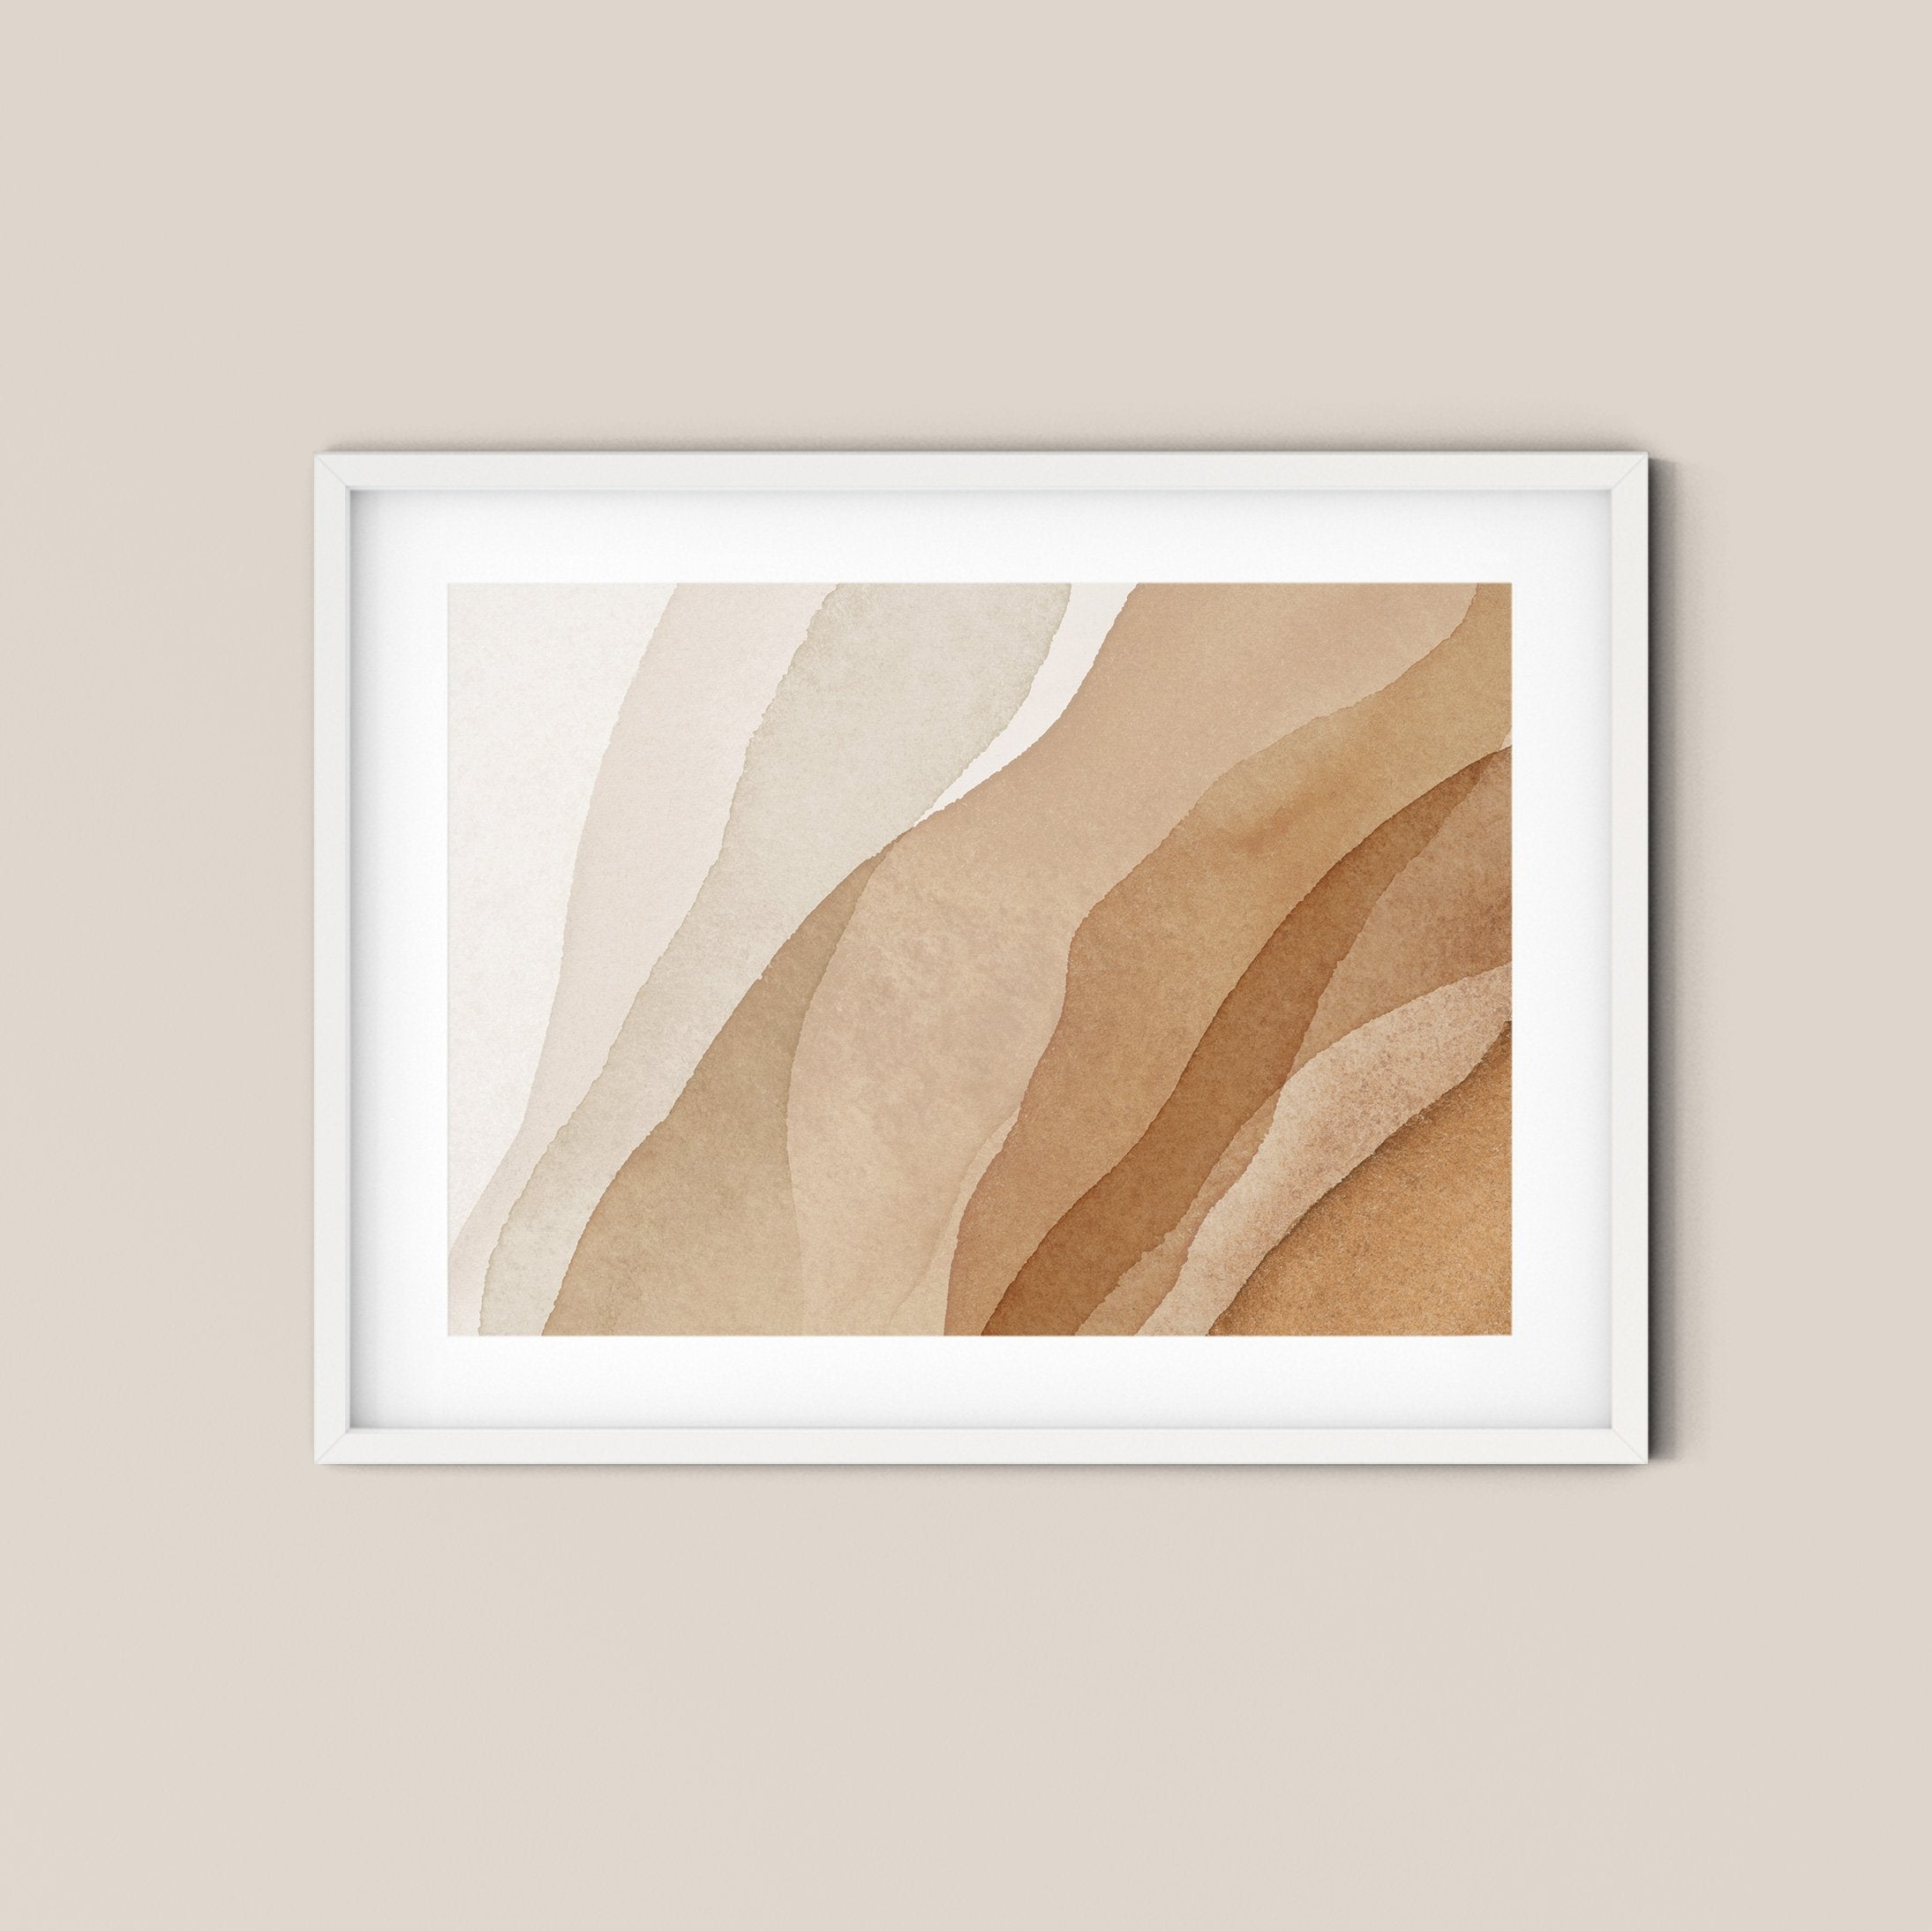 Golden Earthy Abstract Landscape Art Print No.4 - Feathers and Stone